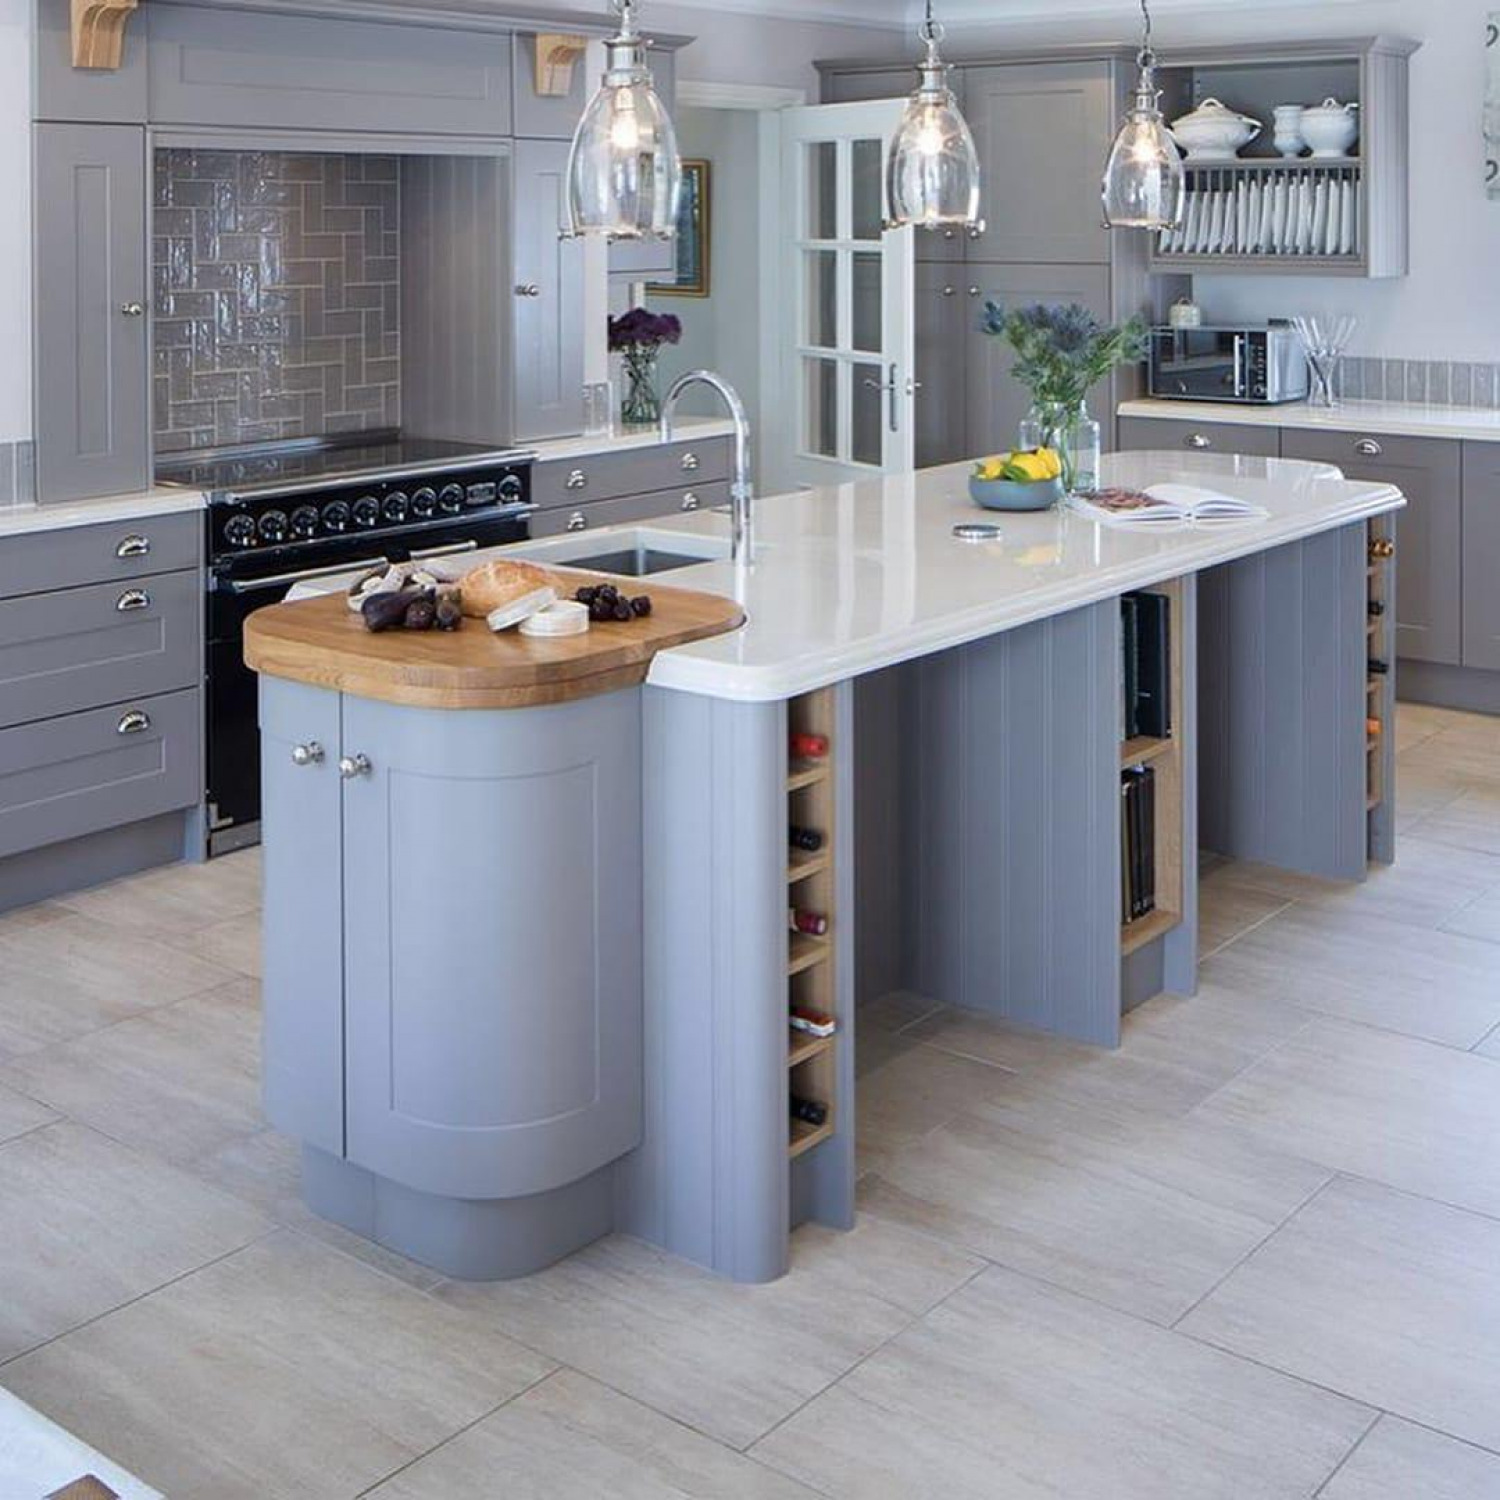 Kitchen Island Ideas: Inspiration for your kitchen | Omega PLC